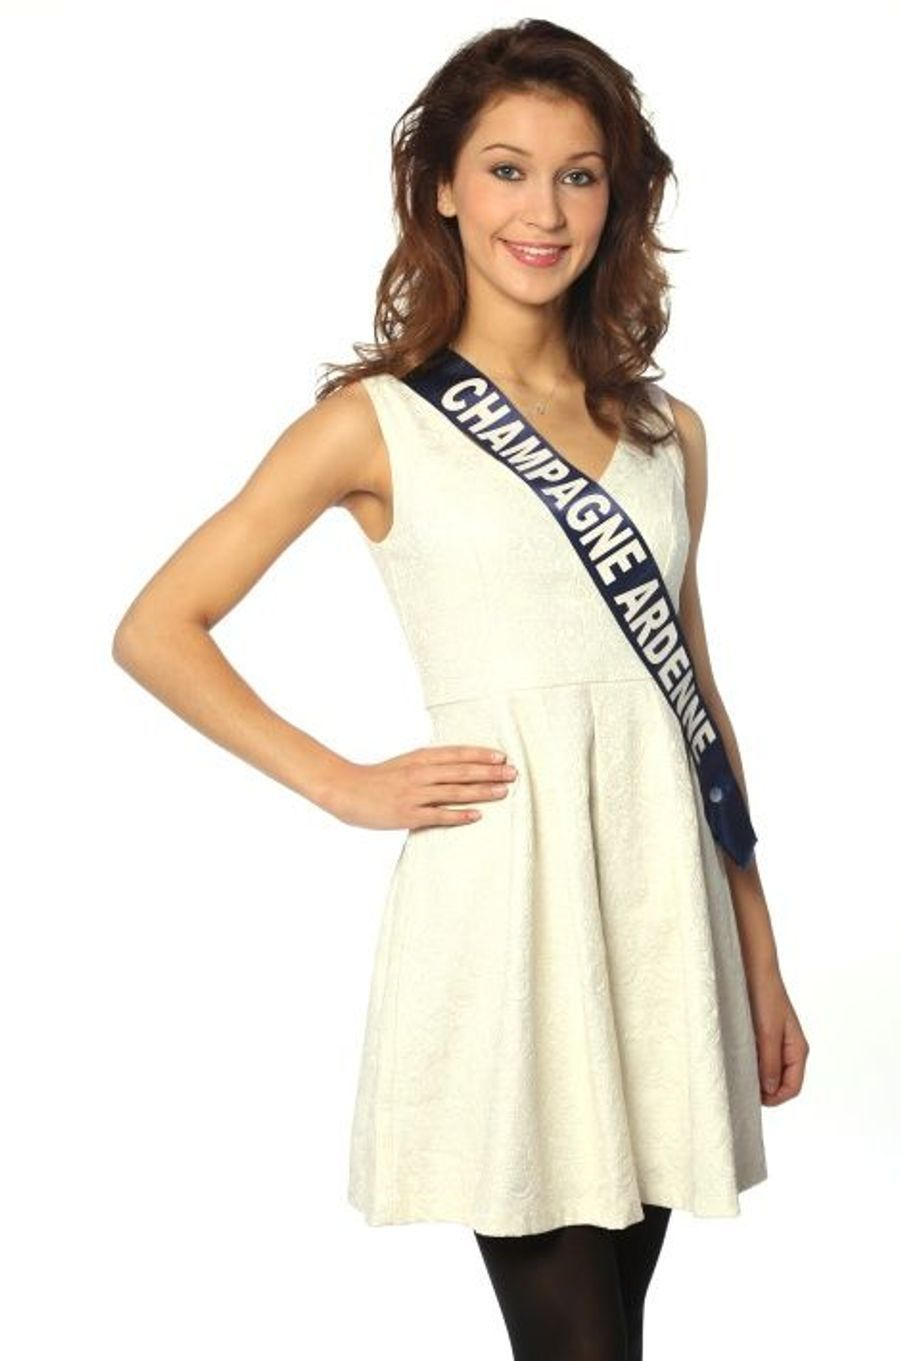 Louise Bataille, 18 ans, Miss Champagne Ardenne